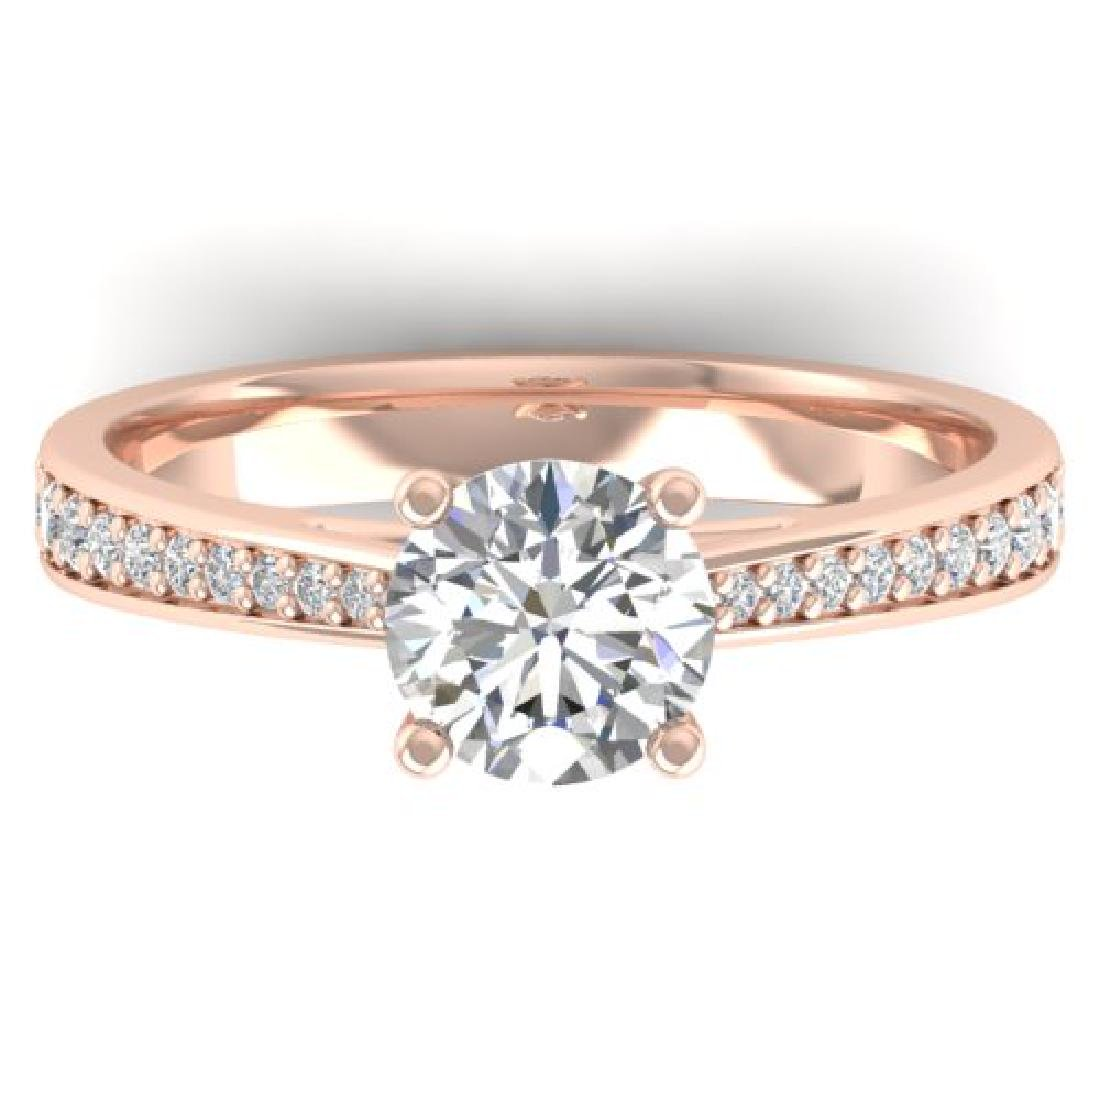 1.26 CTW Certified VS/SI Diamond Solitaire Art Deco